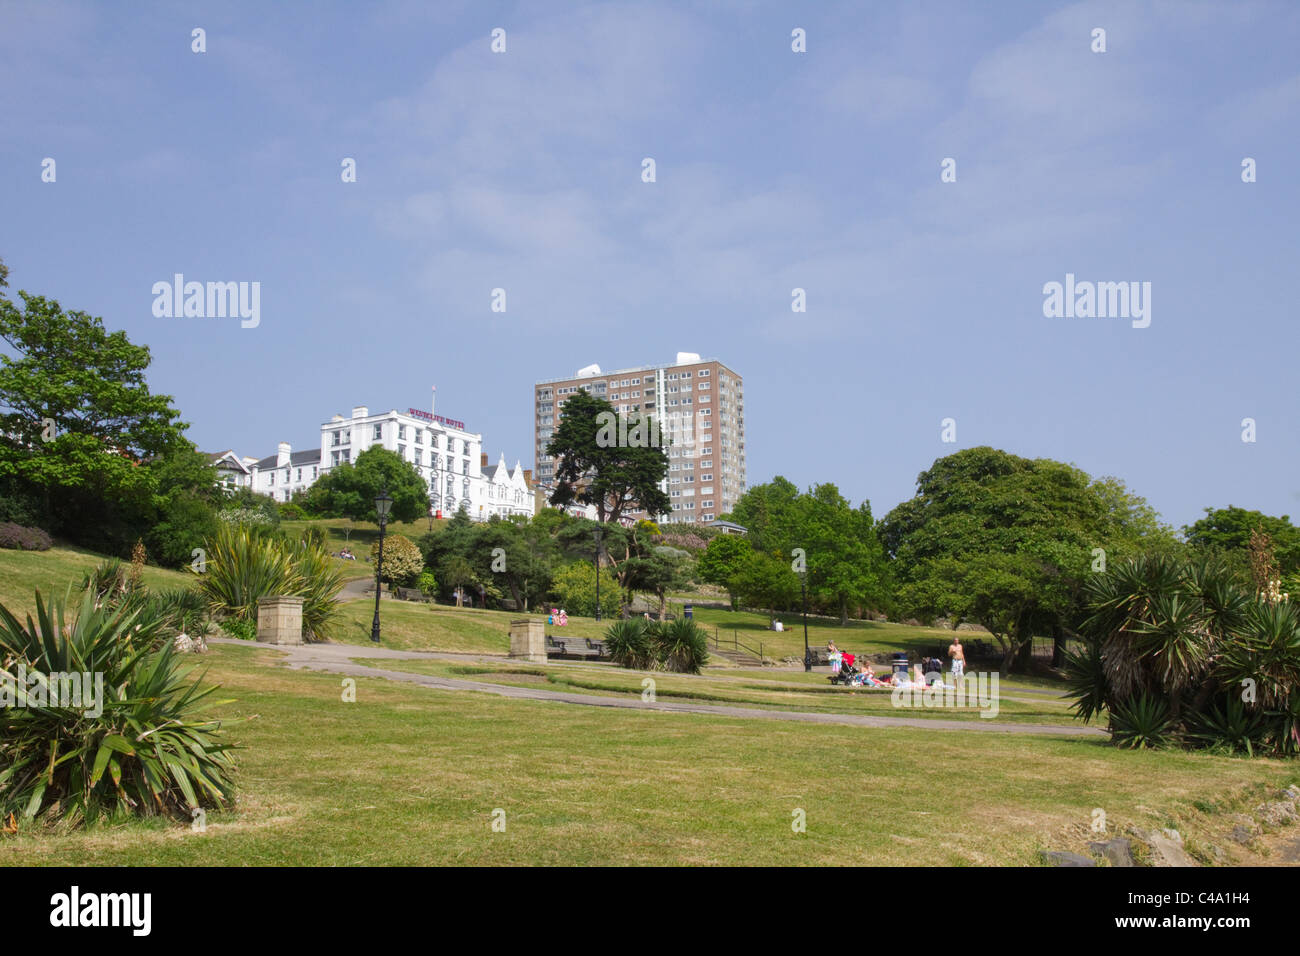 Grassland and Park-like area on the cliffs at Southend-on-Sea Stock Photo